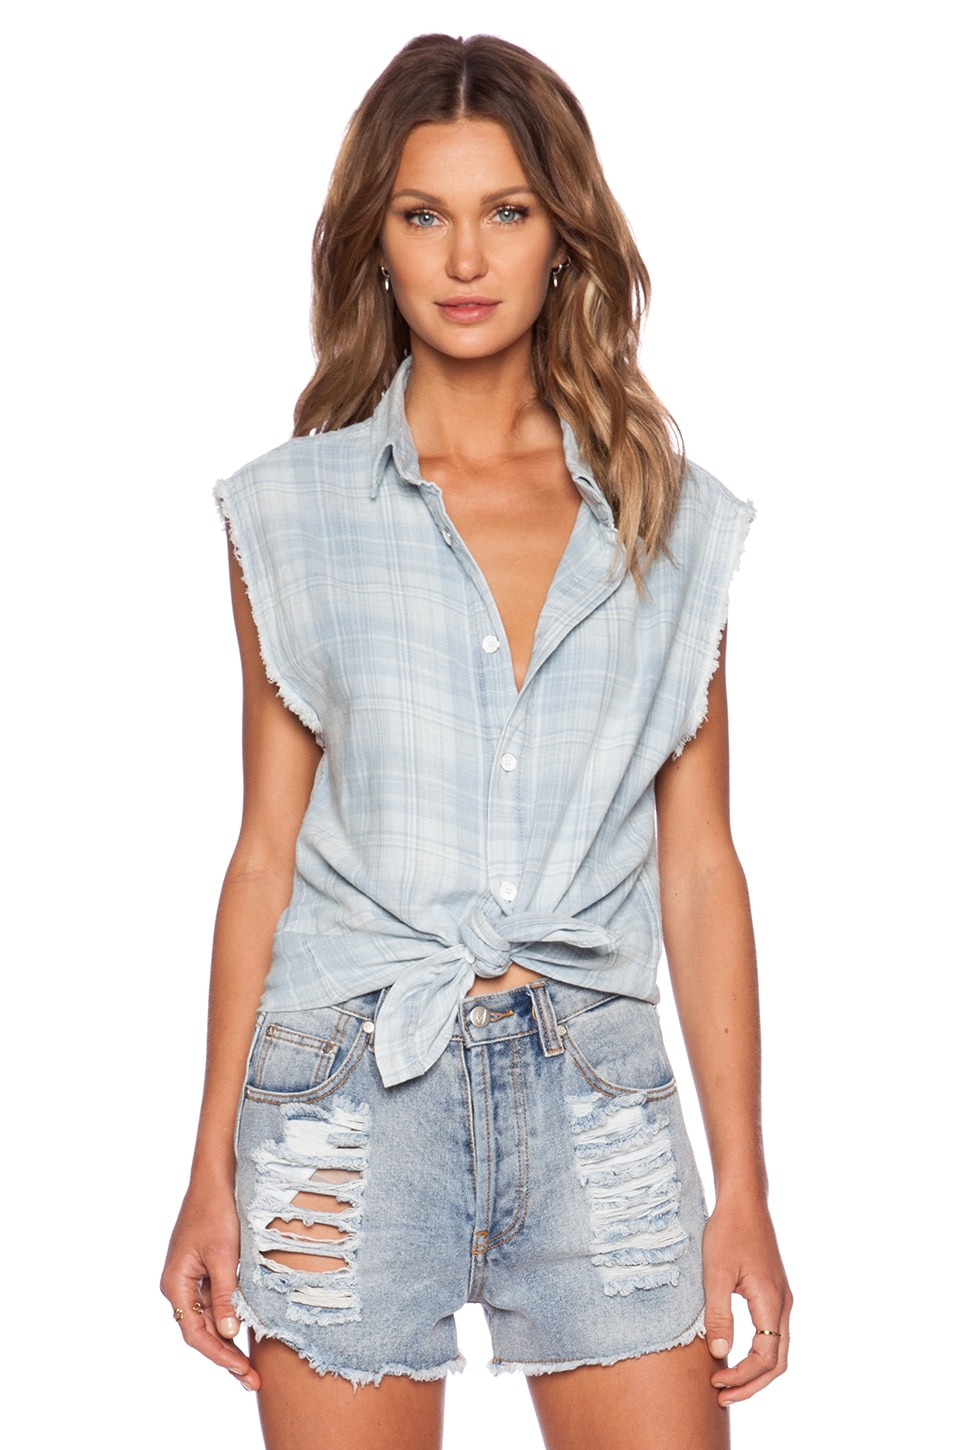 Hudson Jeans Sleeveless Button Up Shirt in West Coast